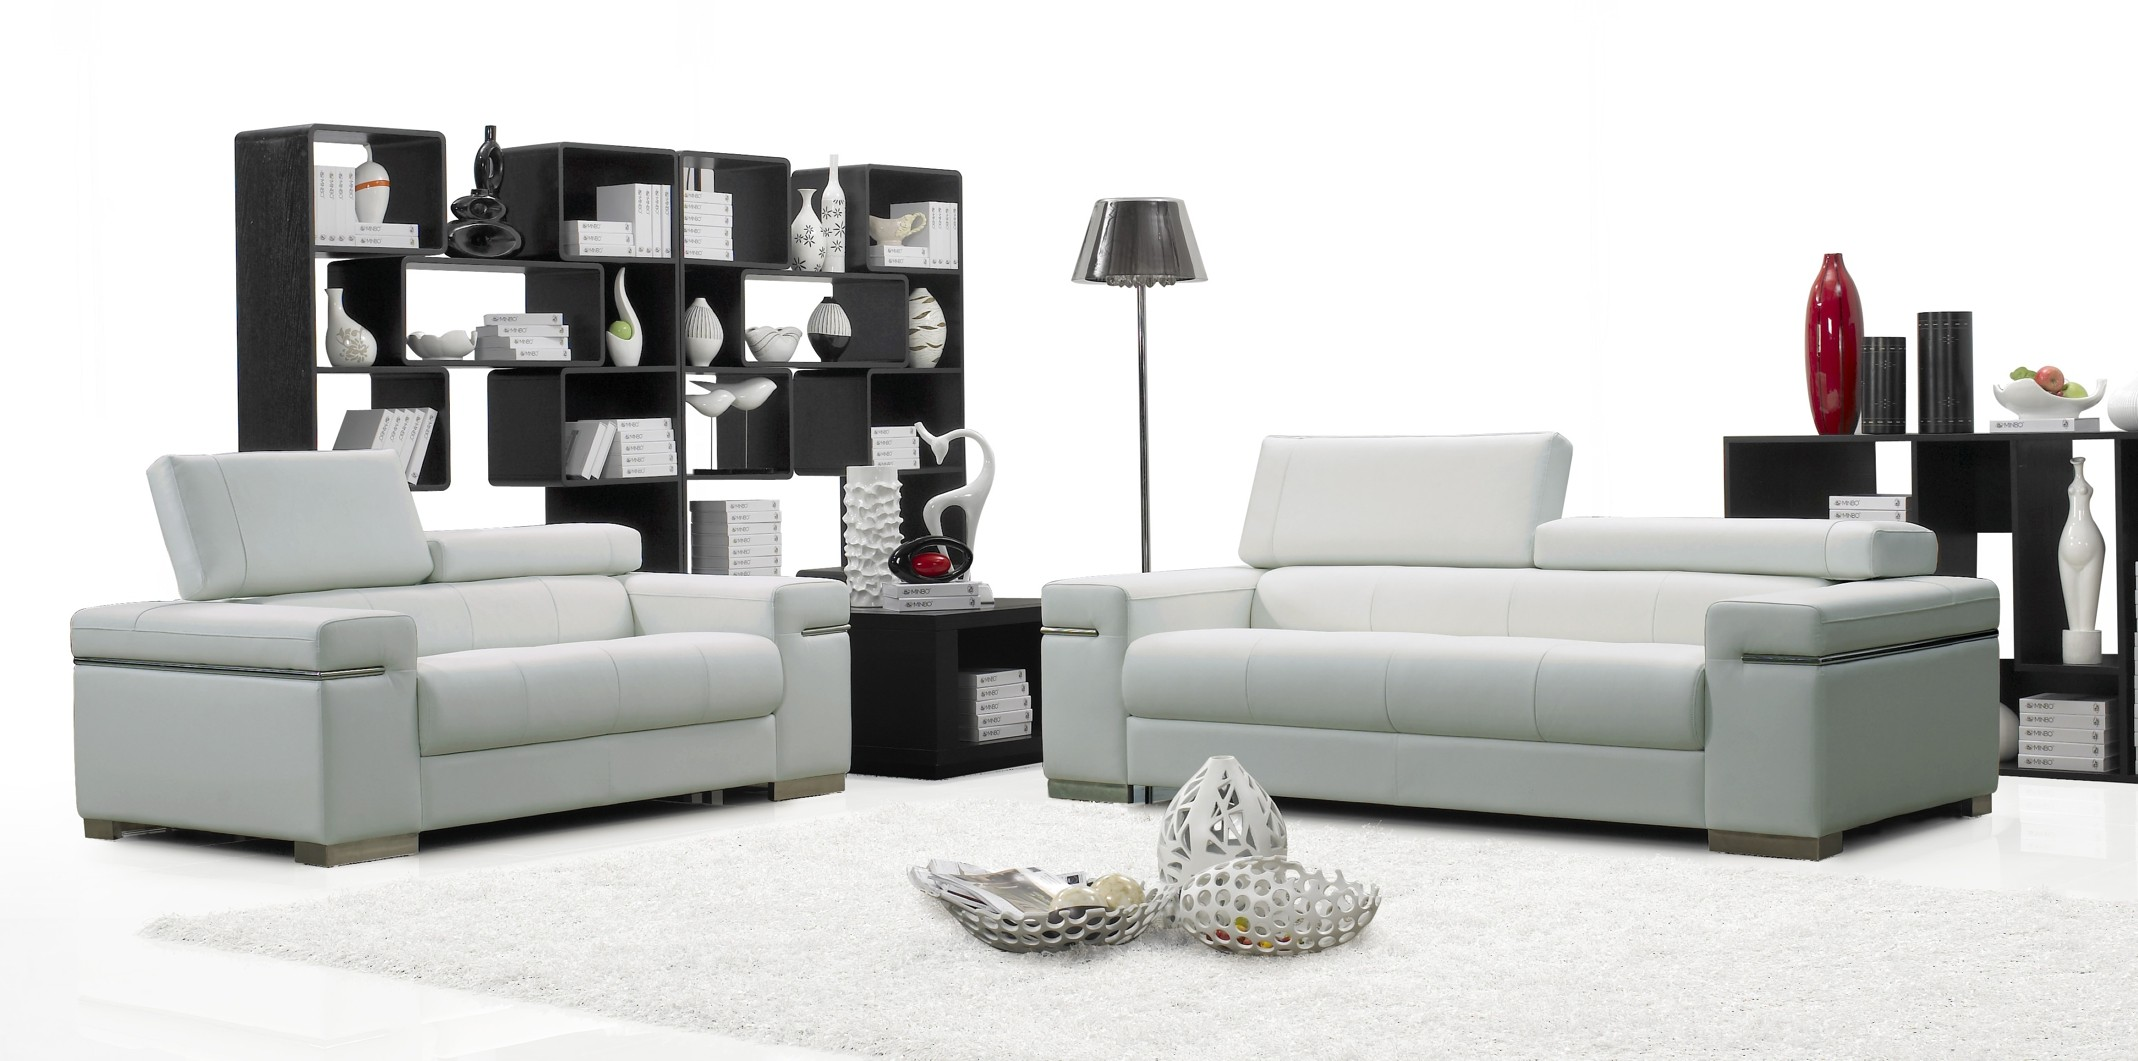 Modern sofa sets white modern sofa set vg 74 leather sofas for Modern living room furniture ideas